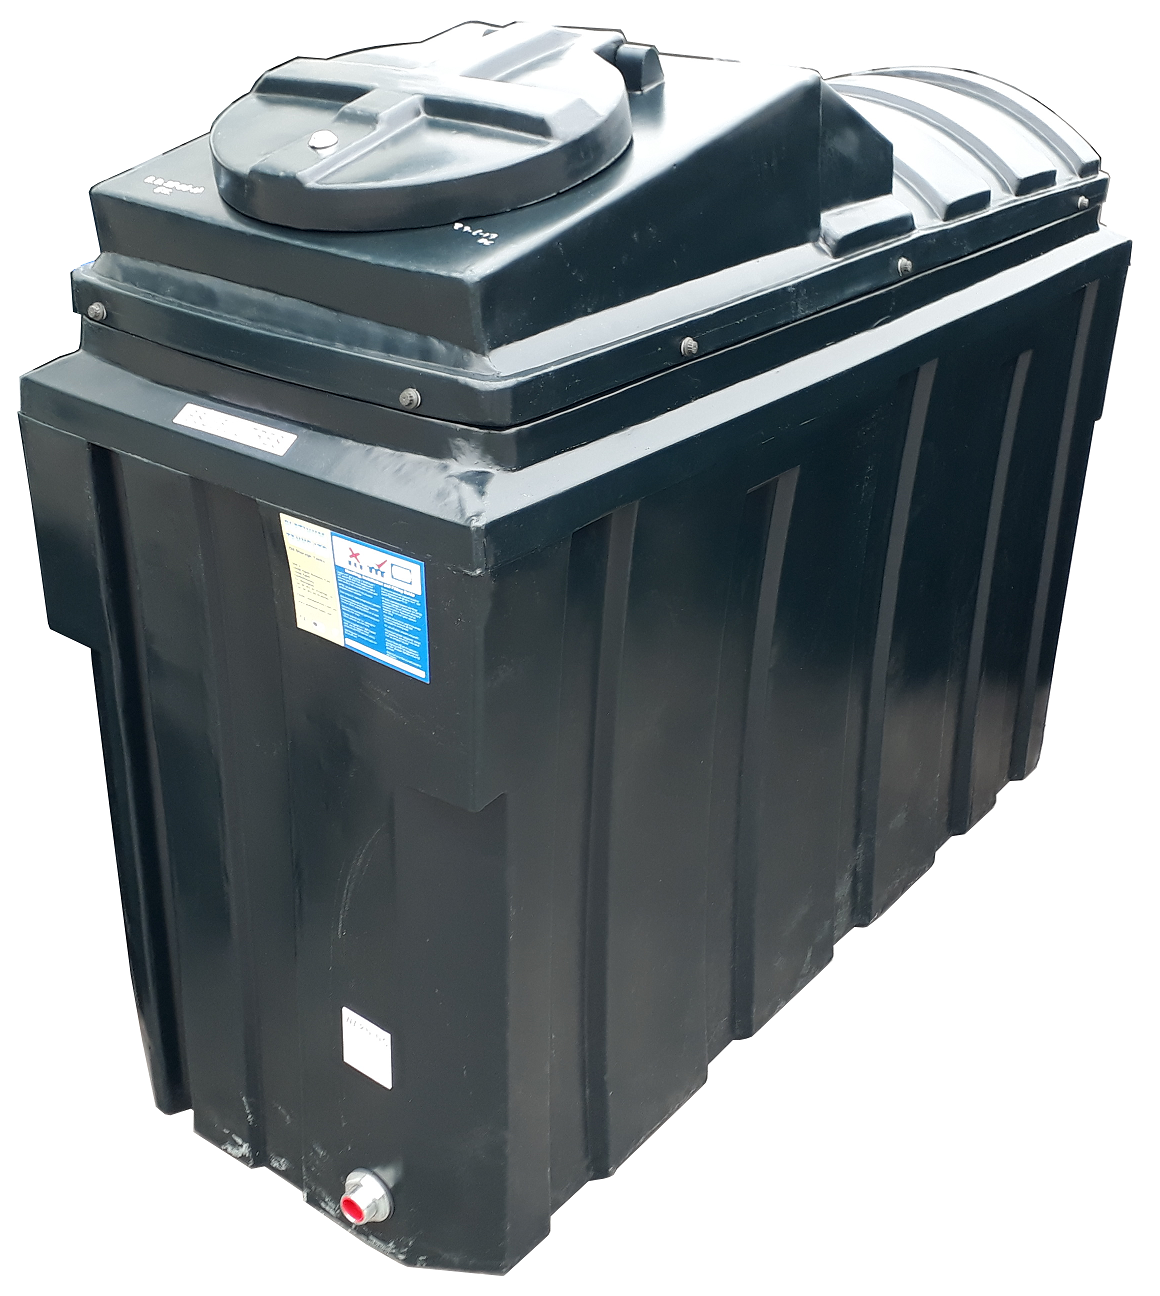 Bunded 1000 Litre Rectangular Oil Tank Image